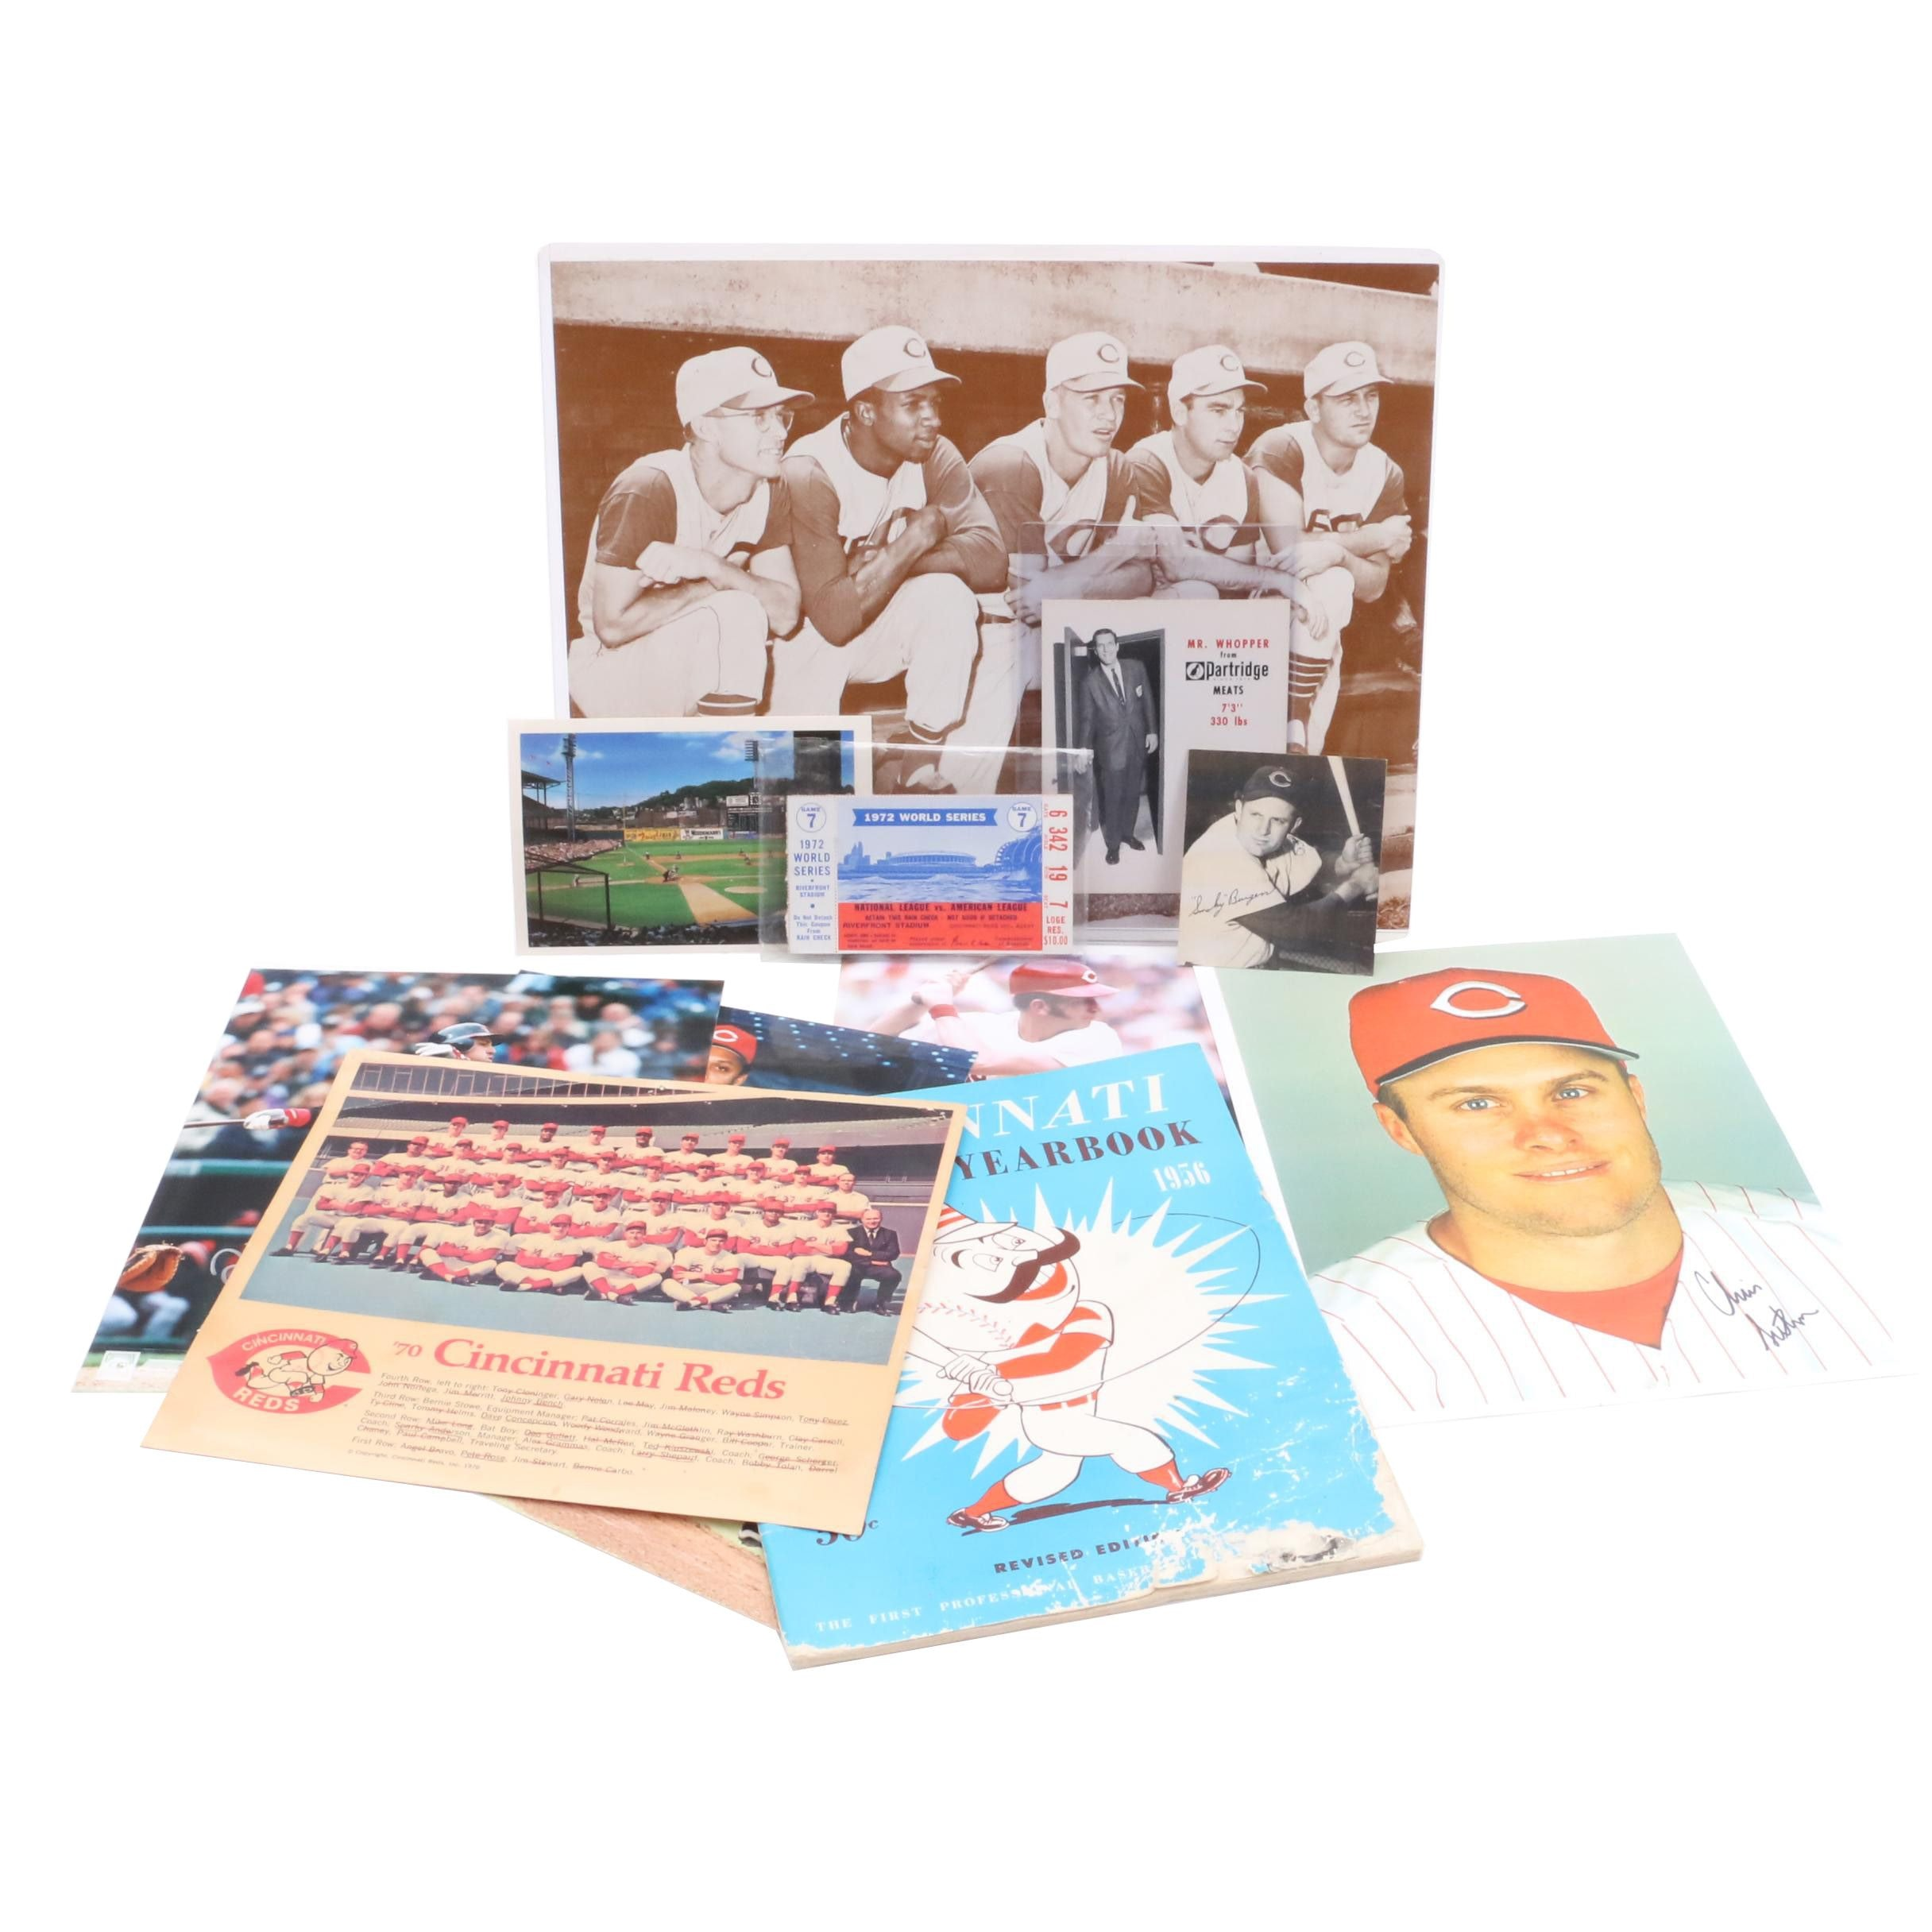 Mr. Whopper and Reds Items Including 1956 Yearbook, Signed Prints, Ticket Stub